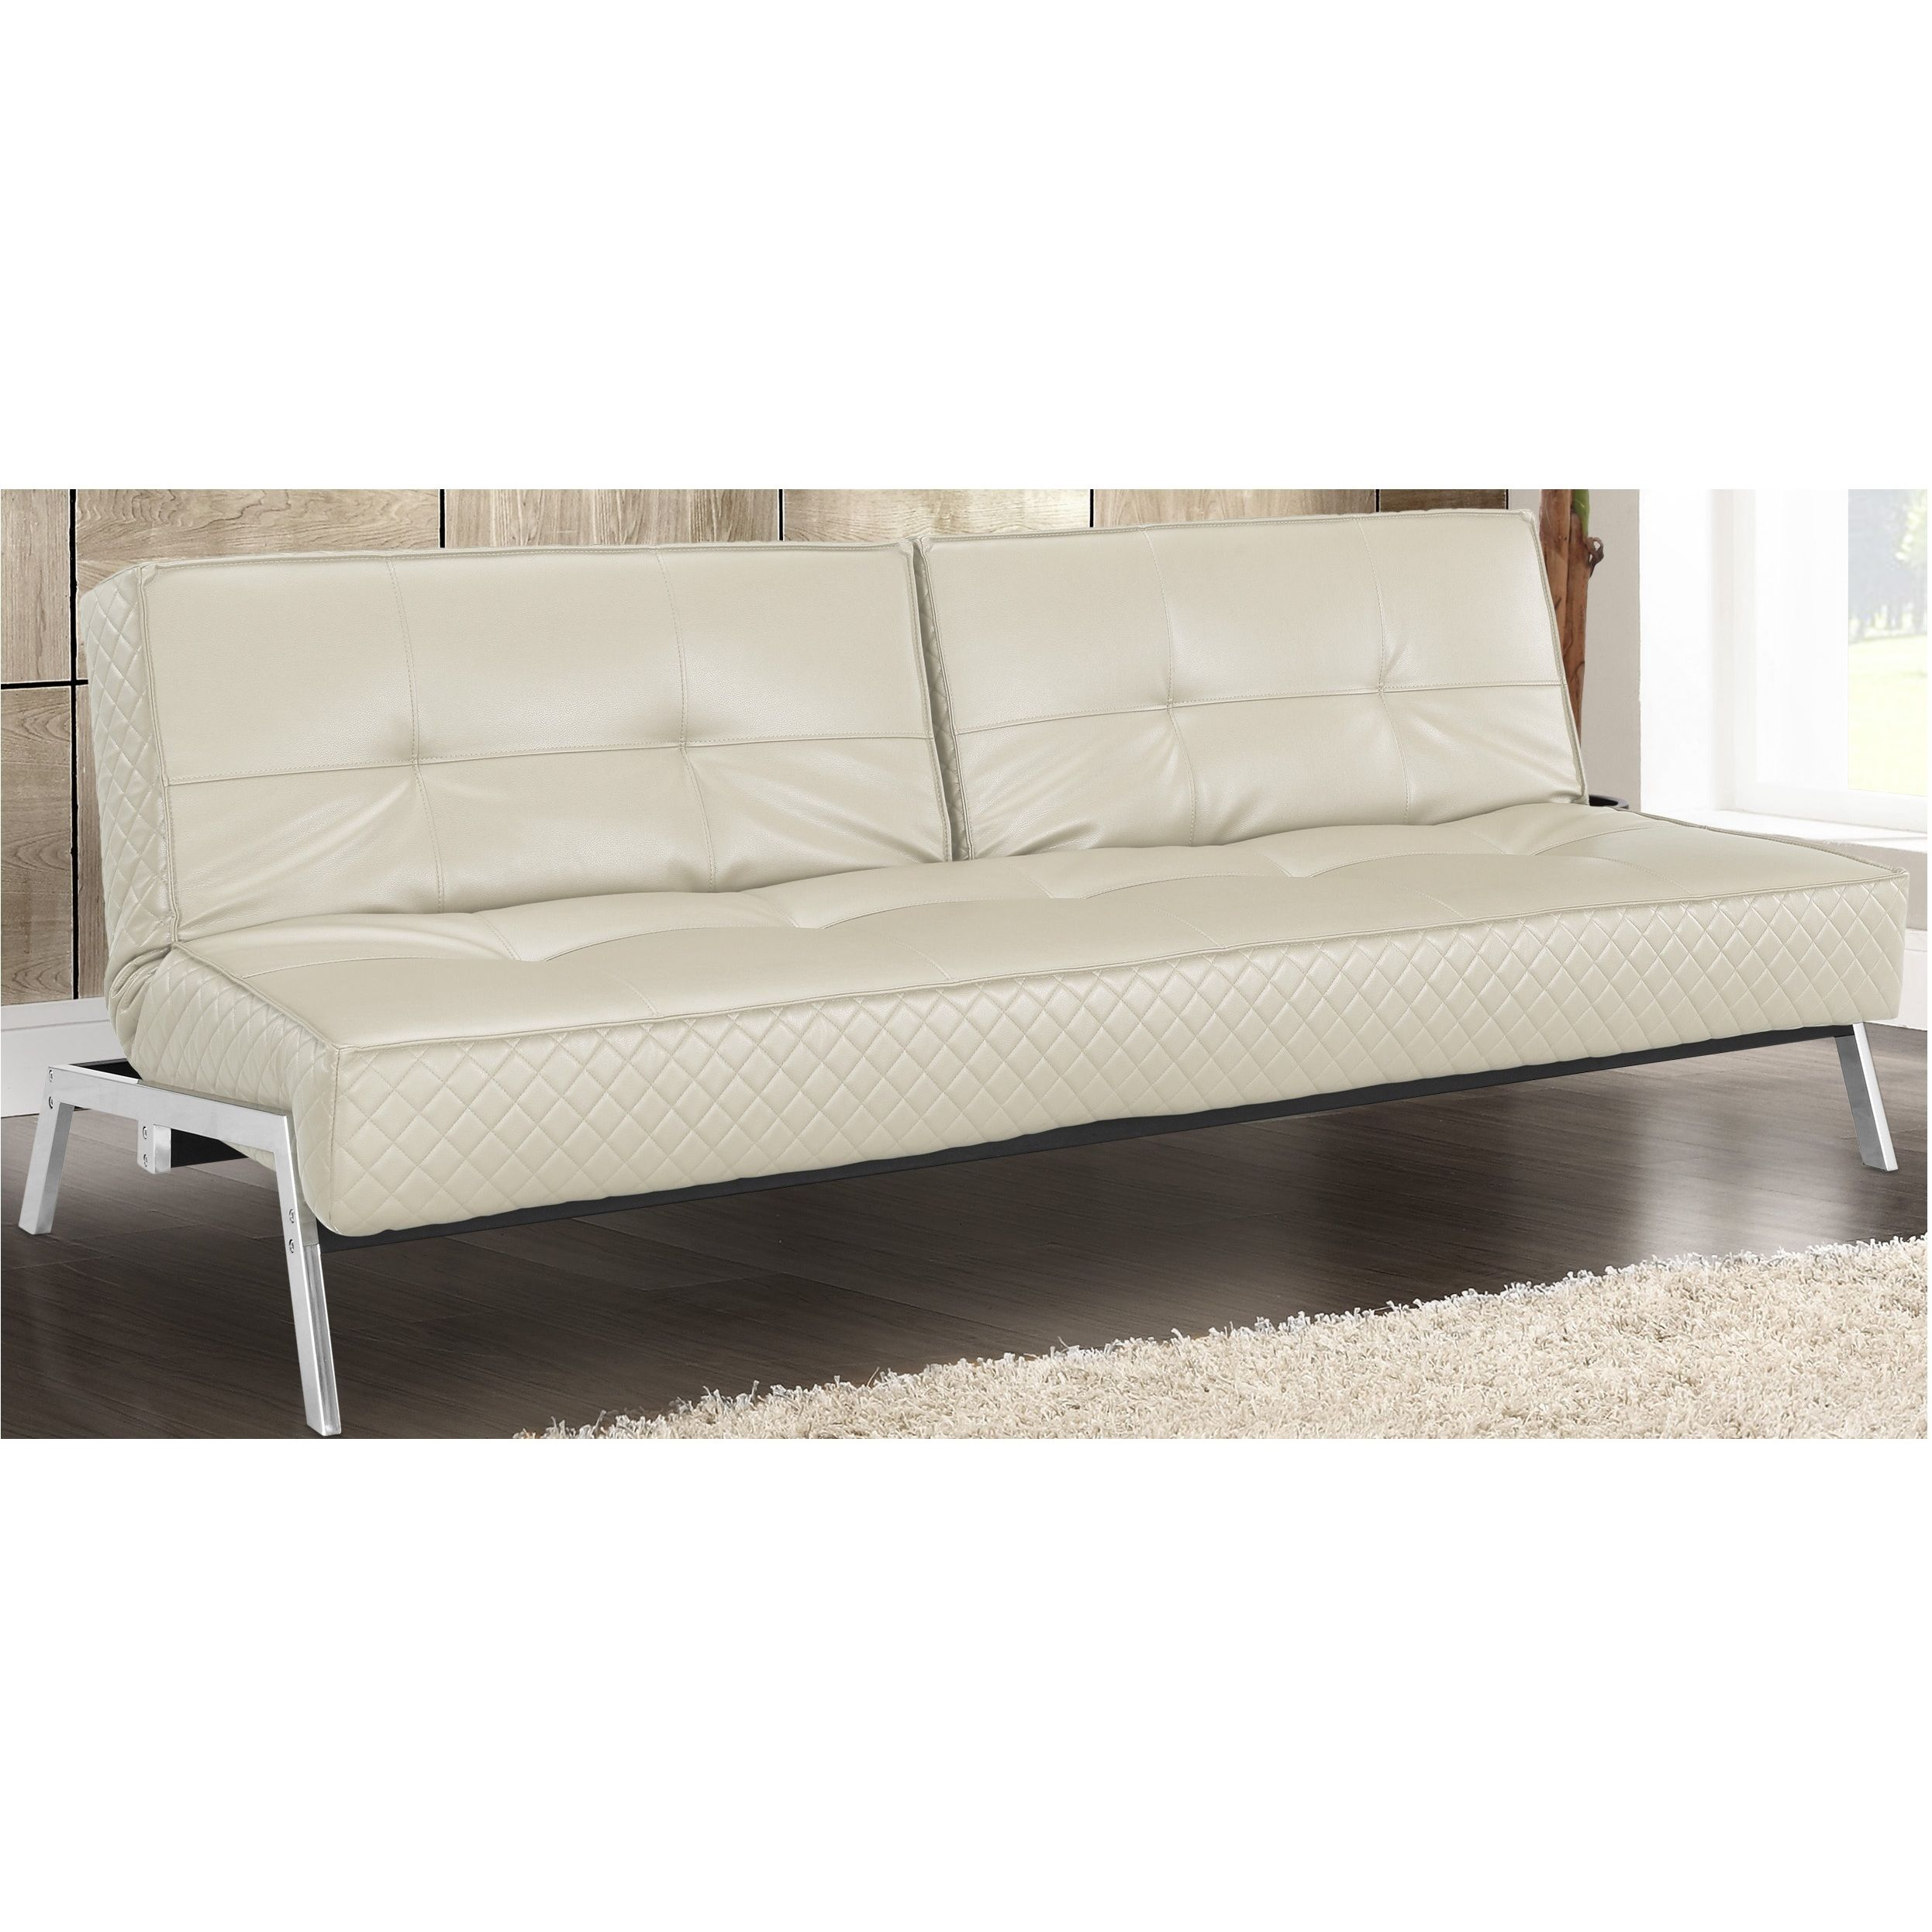 Serta Copenhagen Convertible Sleeper Sofa | Furniture | Sofa ...